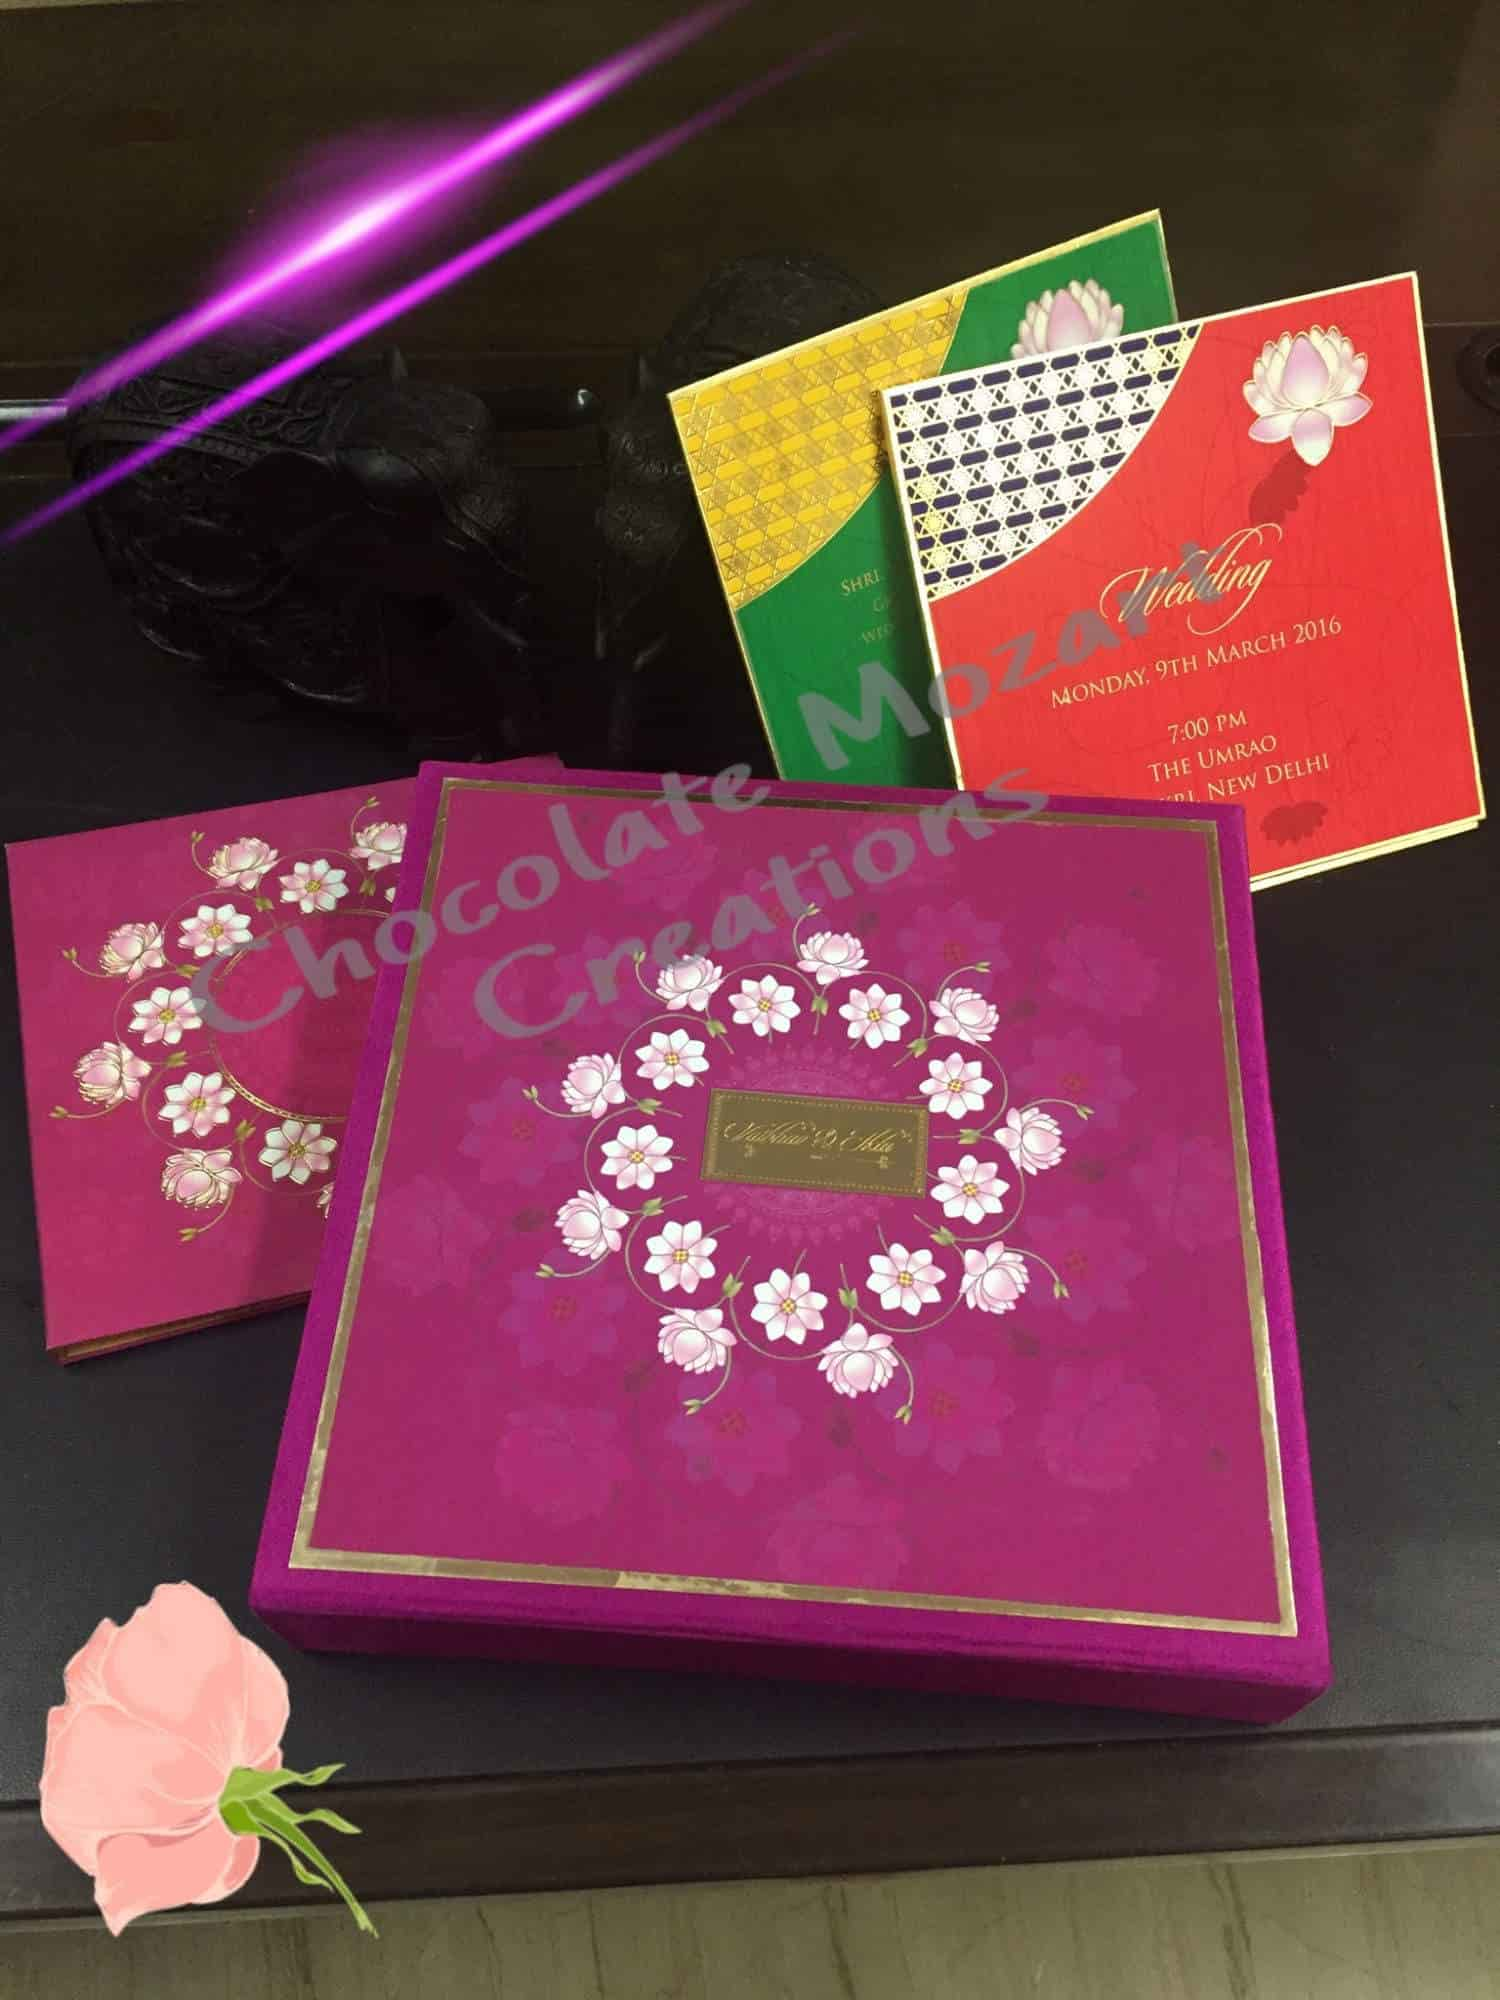 Chocolate Mozart Confections Designer Wedding Cards N Boxes Photos ...